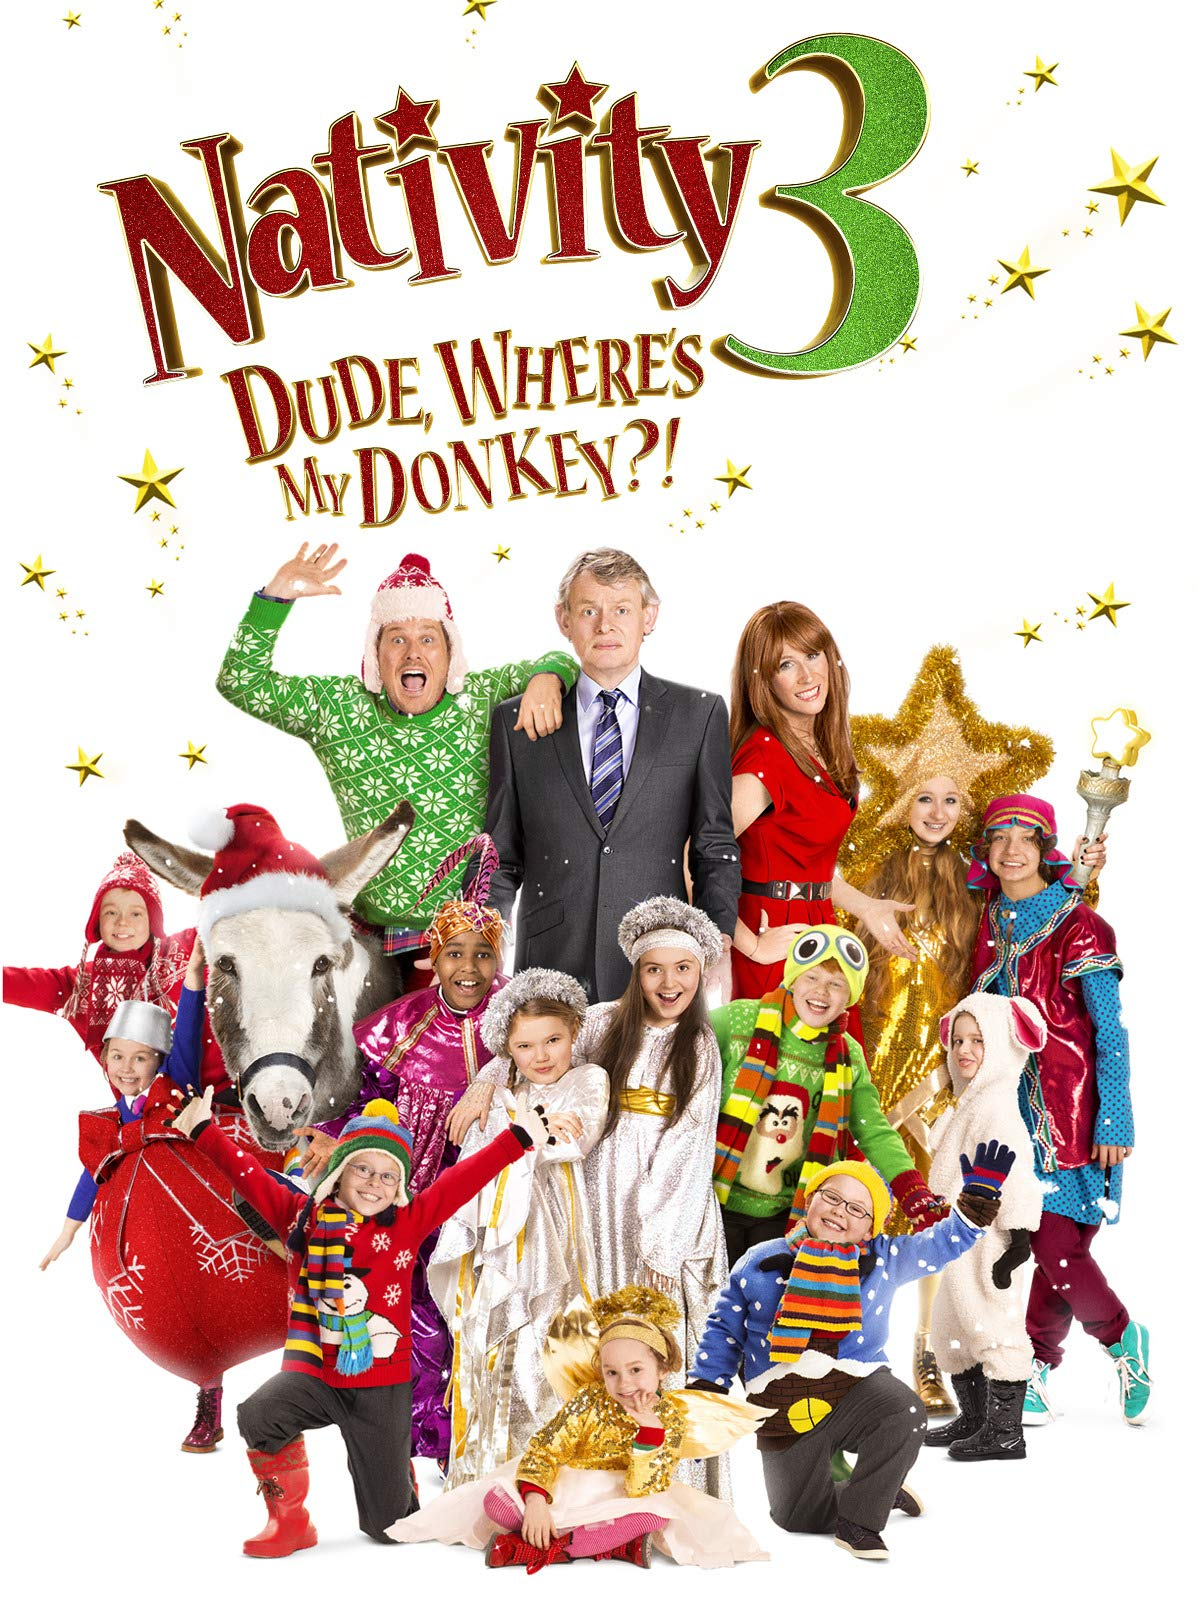 Watch Nativity 3 Dude, Where's my Donkey?! | Prime Video